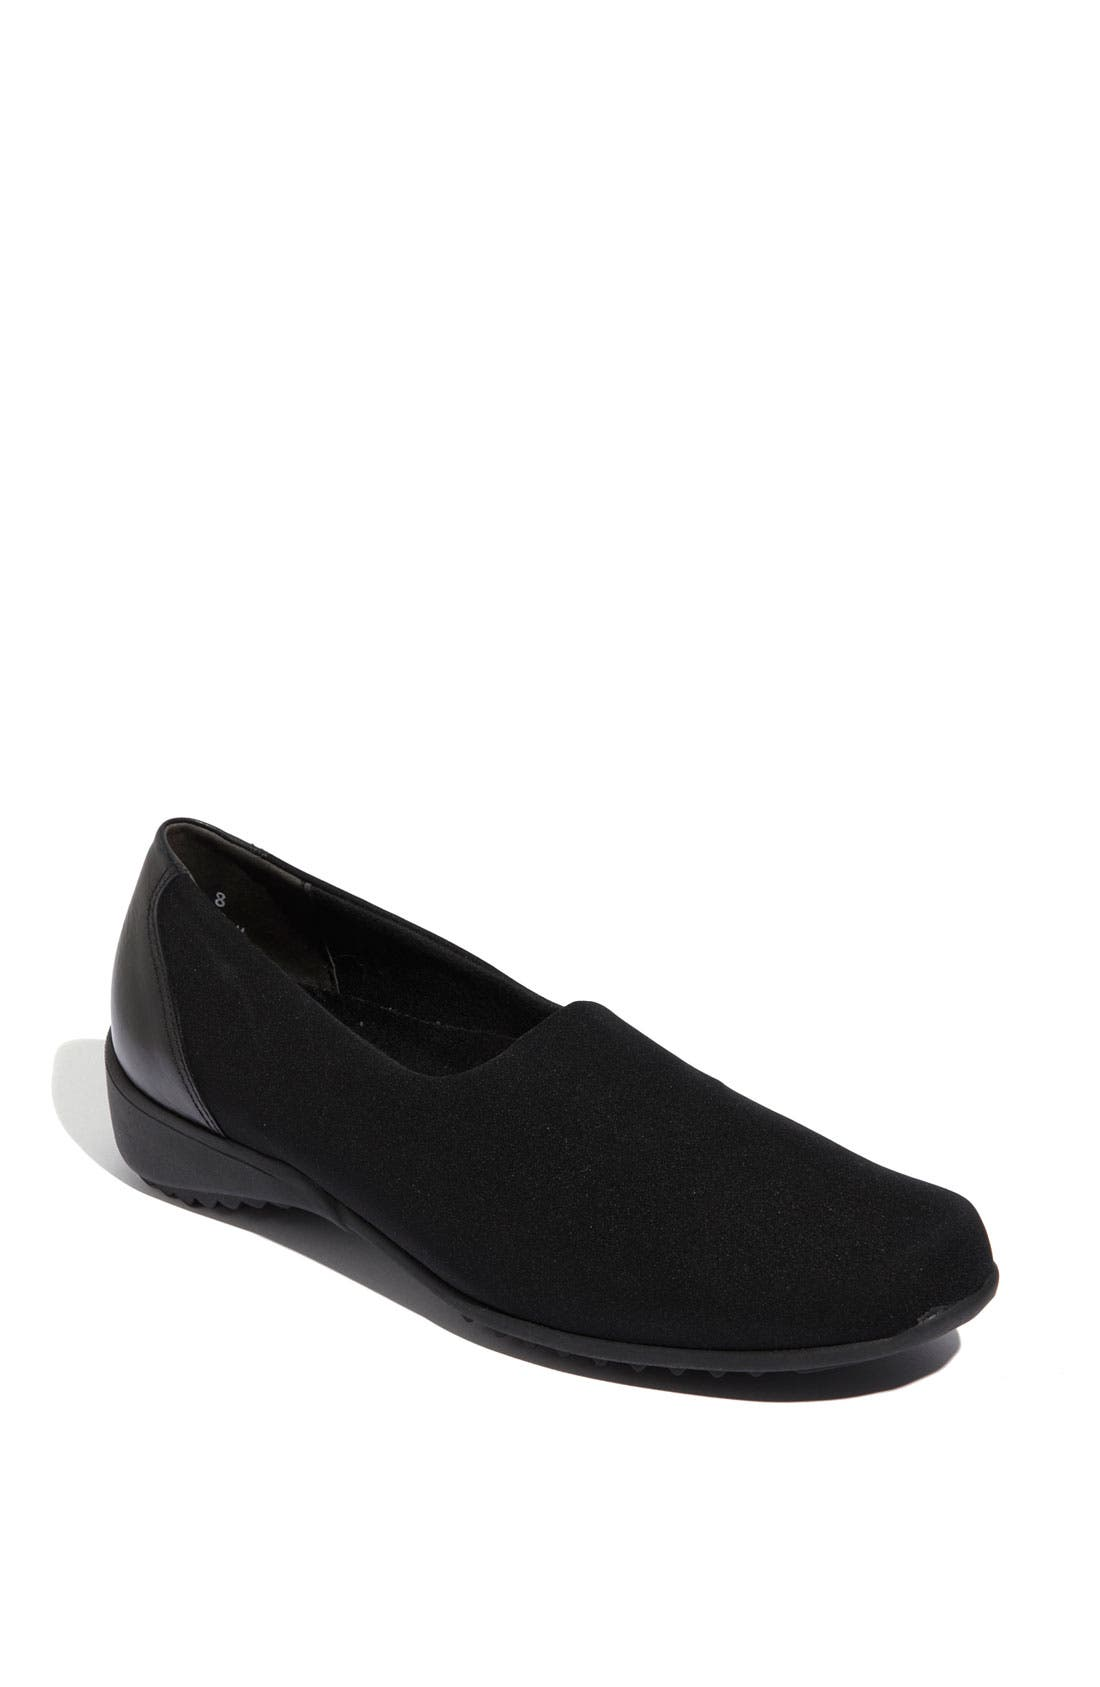 Main Image - Munro 'Traveler' Slip-On (Women)